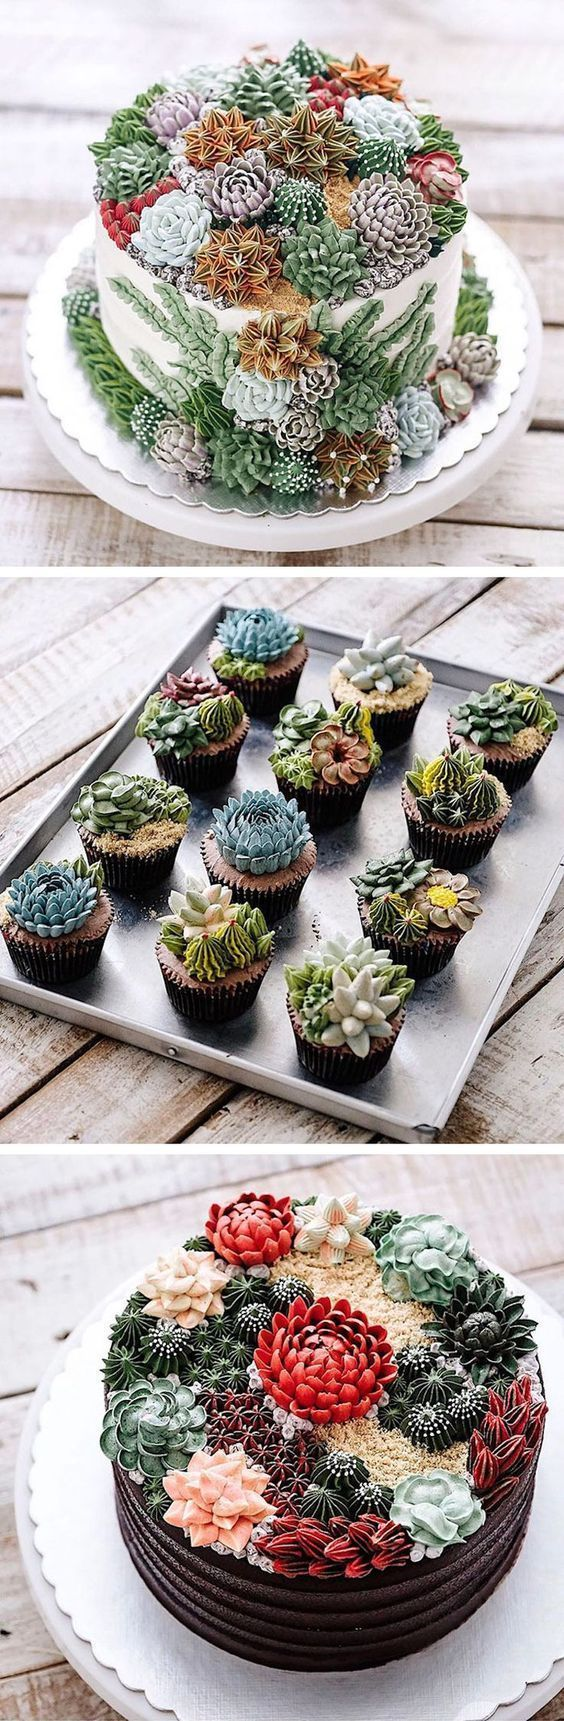 Lifelike 'Succulent Cakes' Turn Prickly Plants into Delicious Desserts